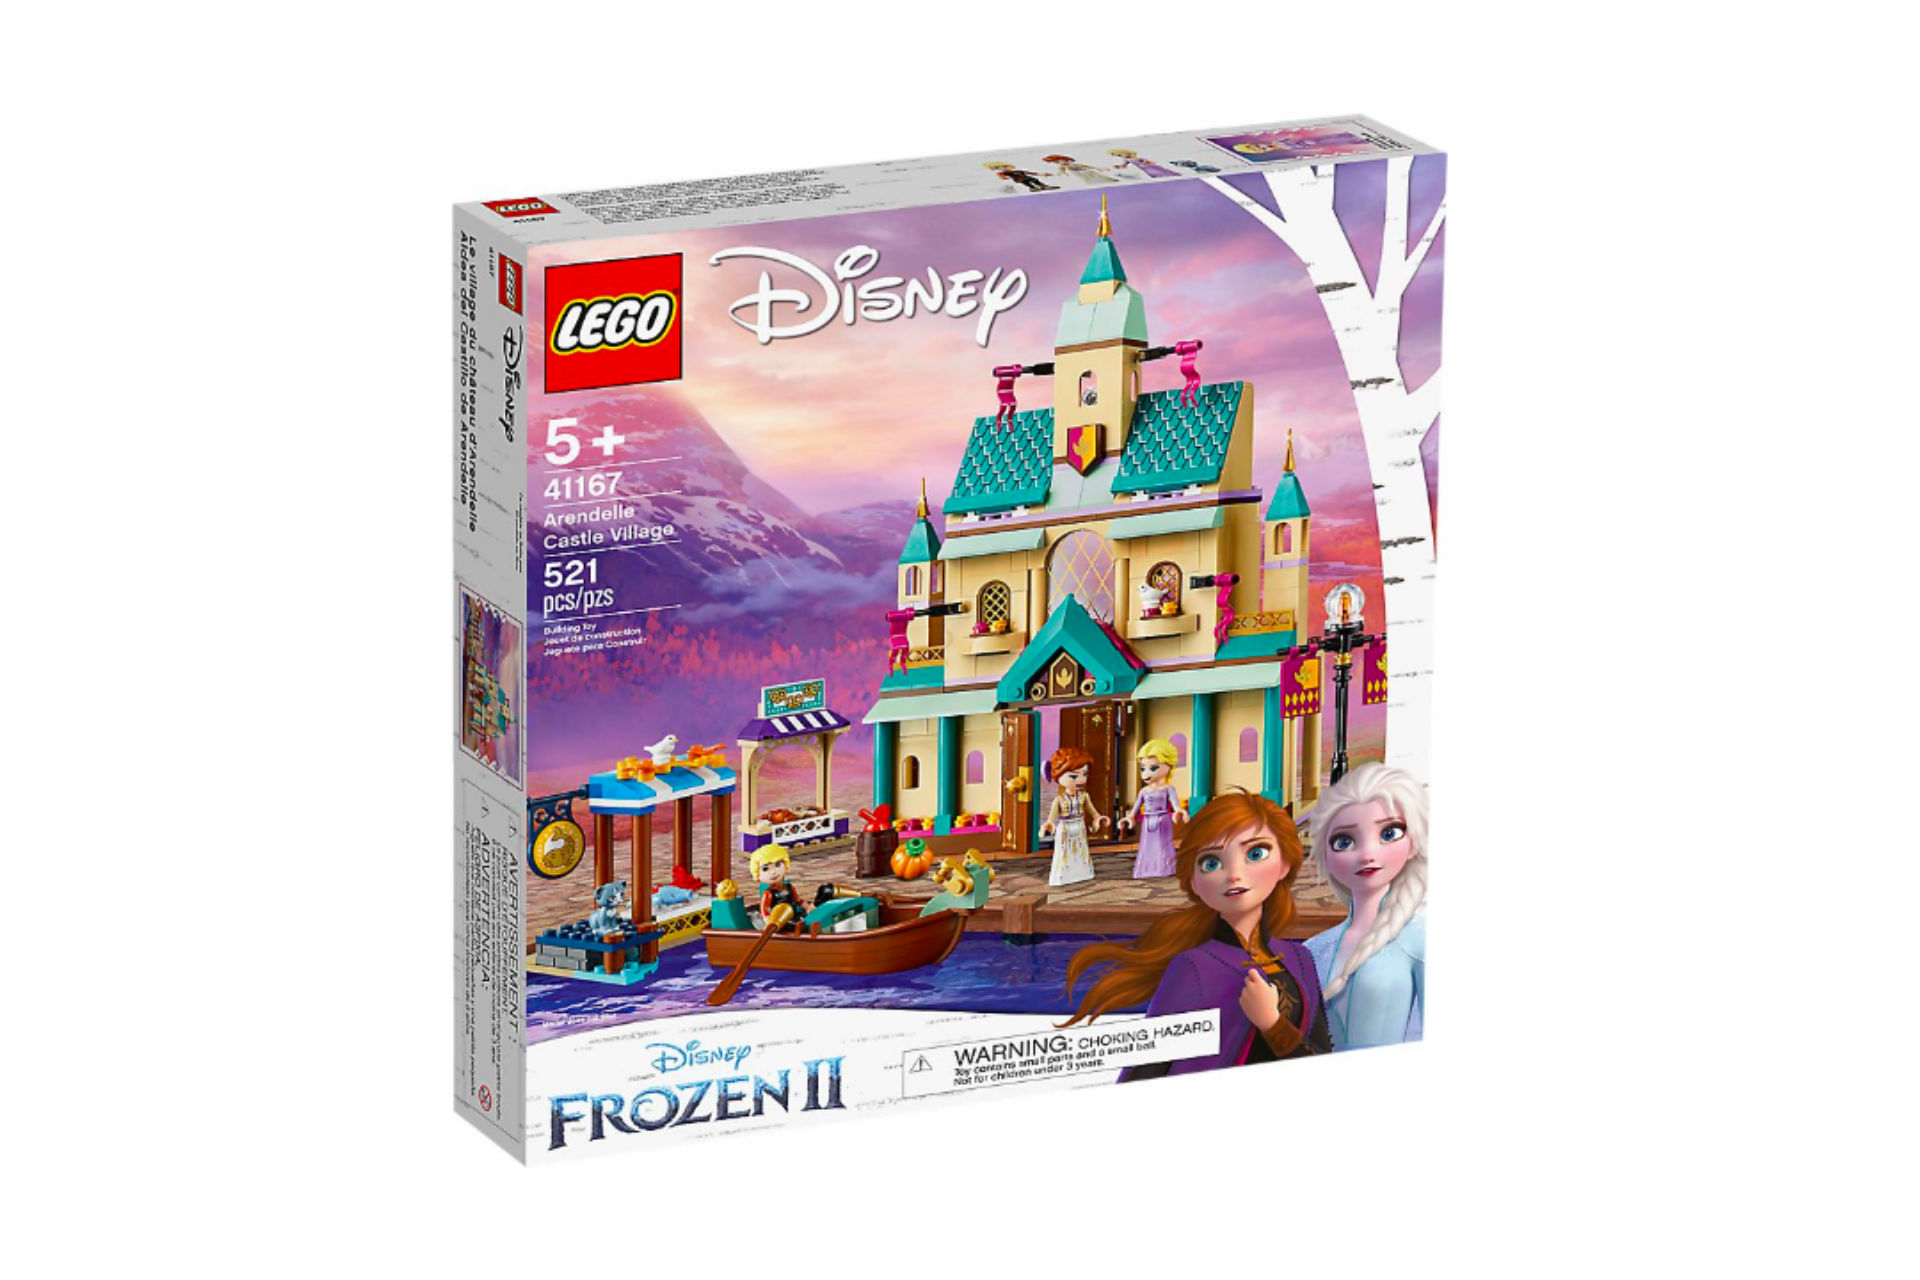 box of Frozen-themed lego